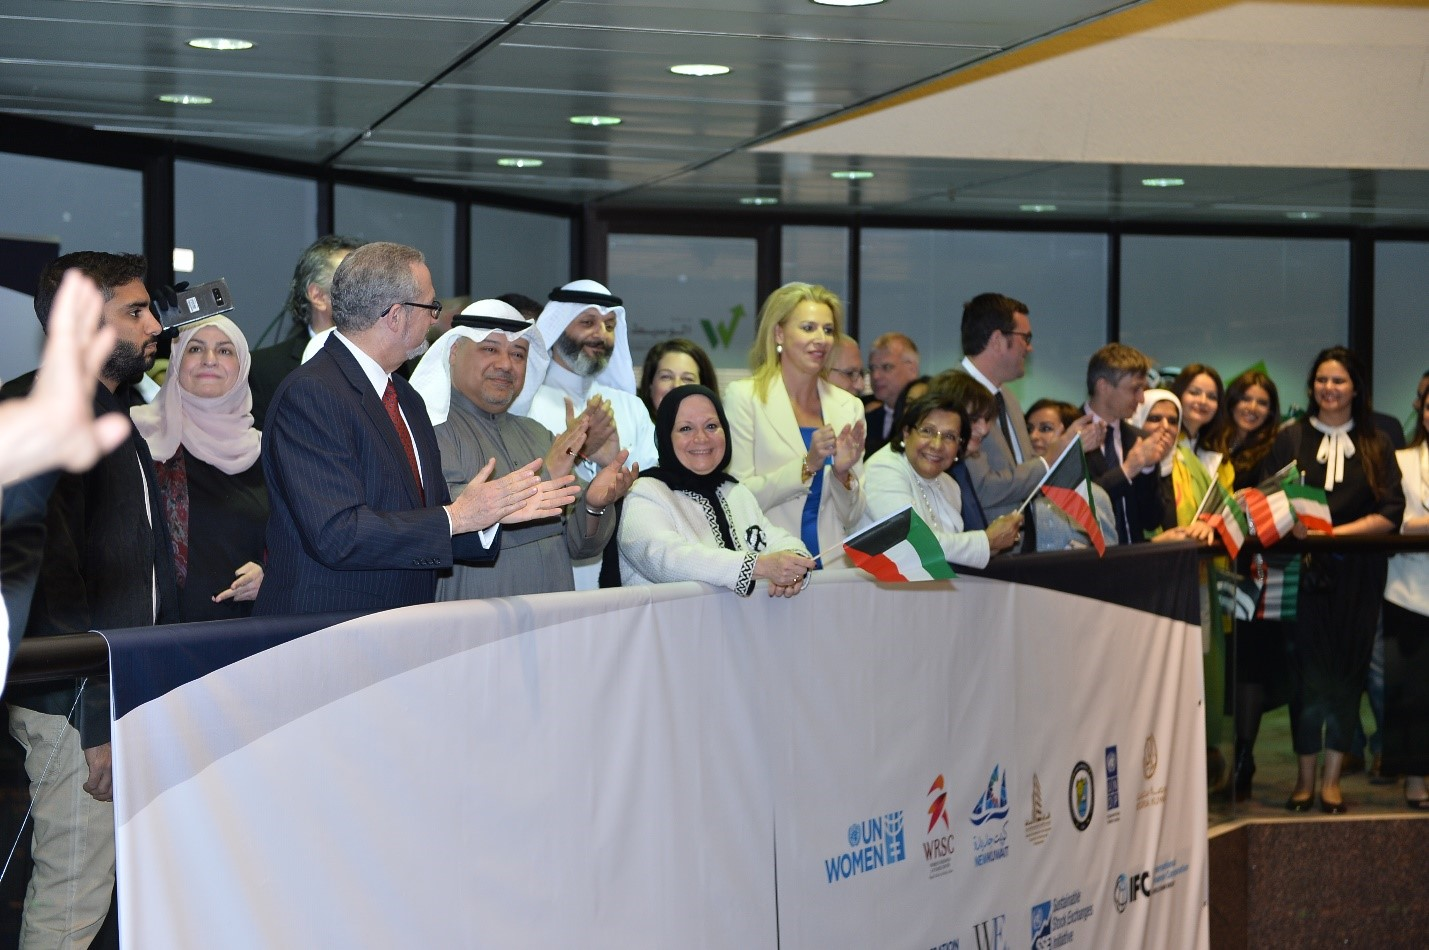 Kuwait celebrates International Women's Day 2019 with Ring the Bell ceremony at Kuwait Stock Exchange